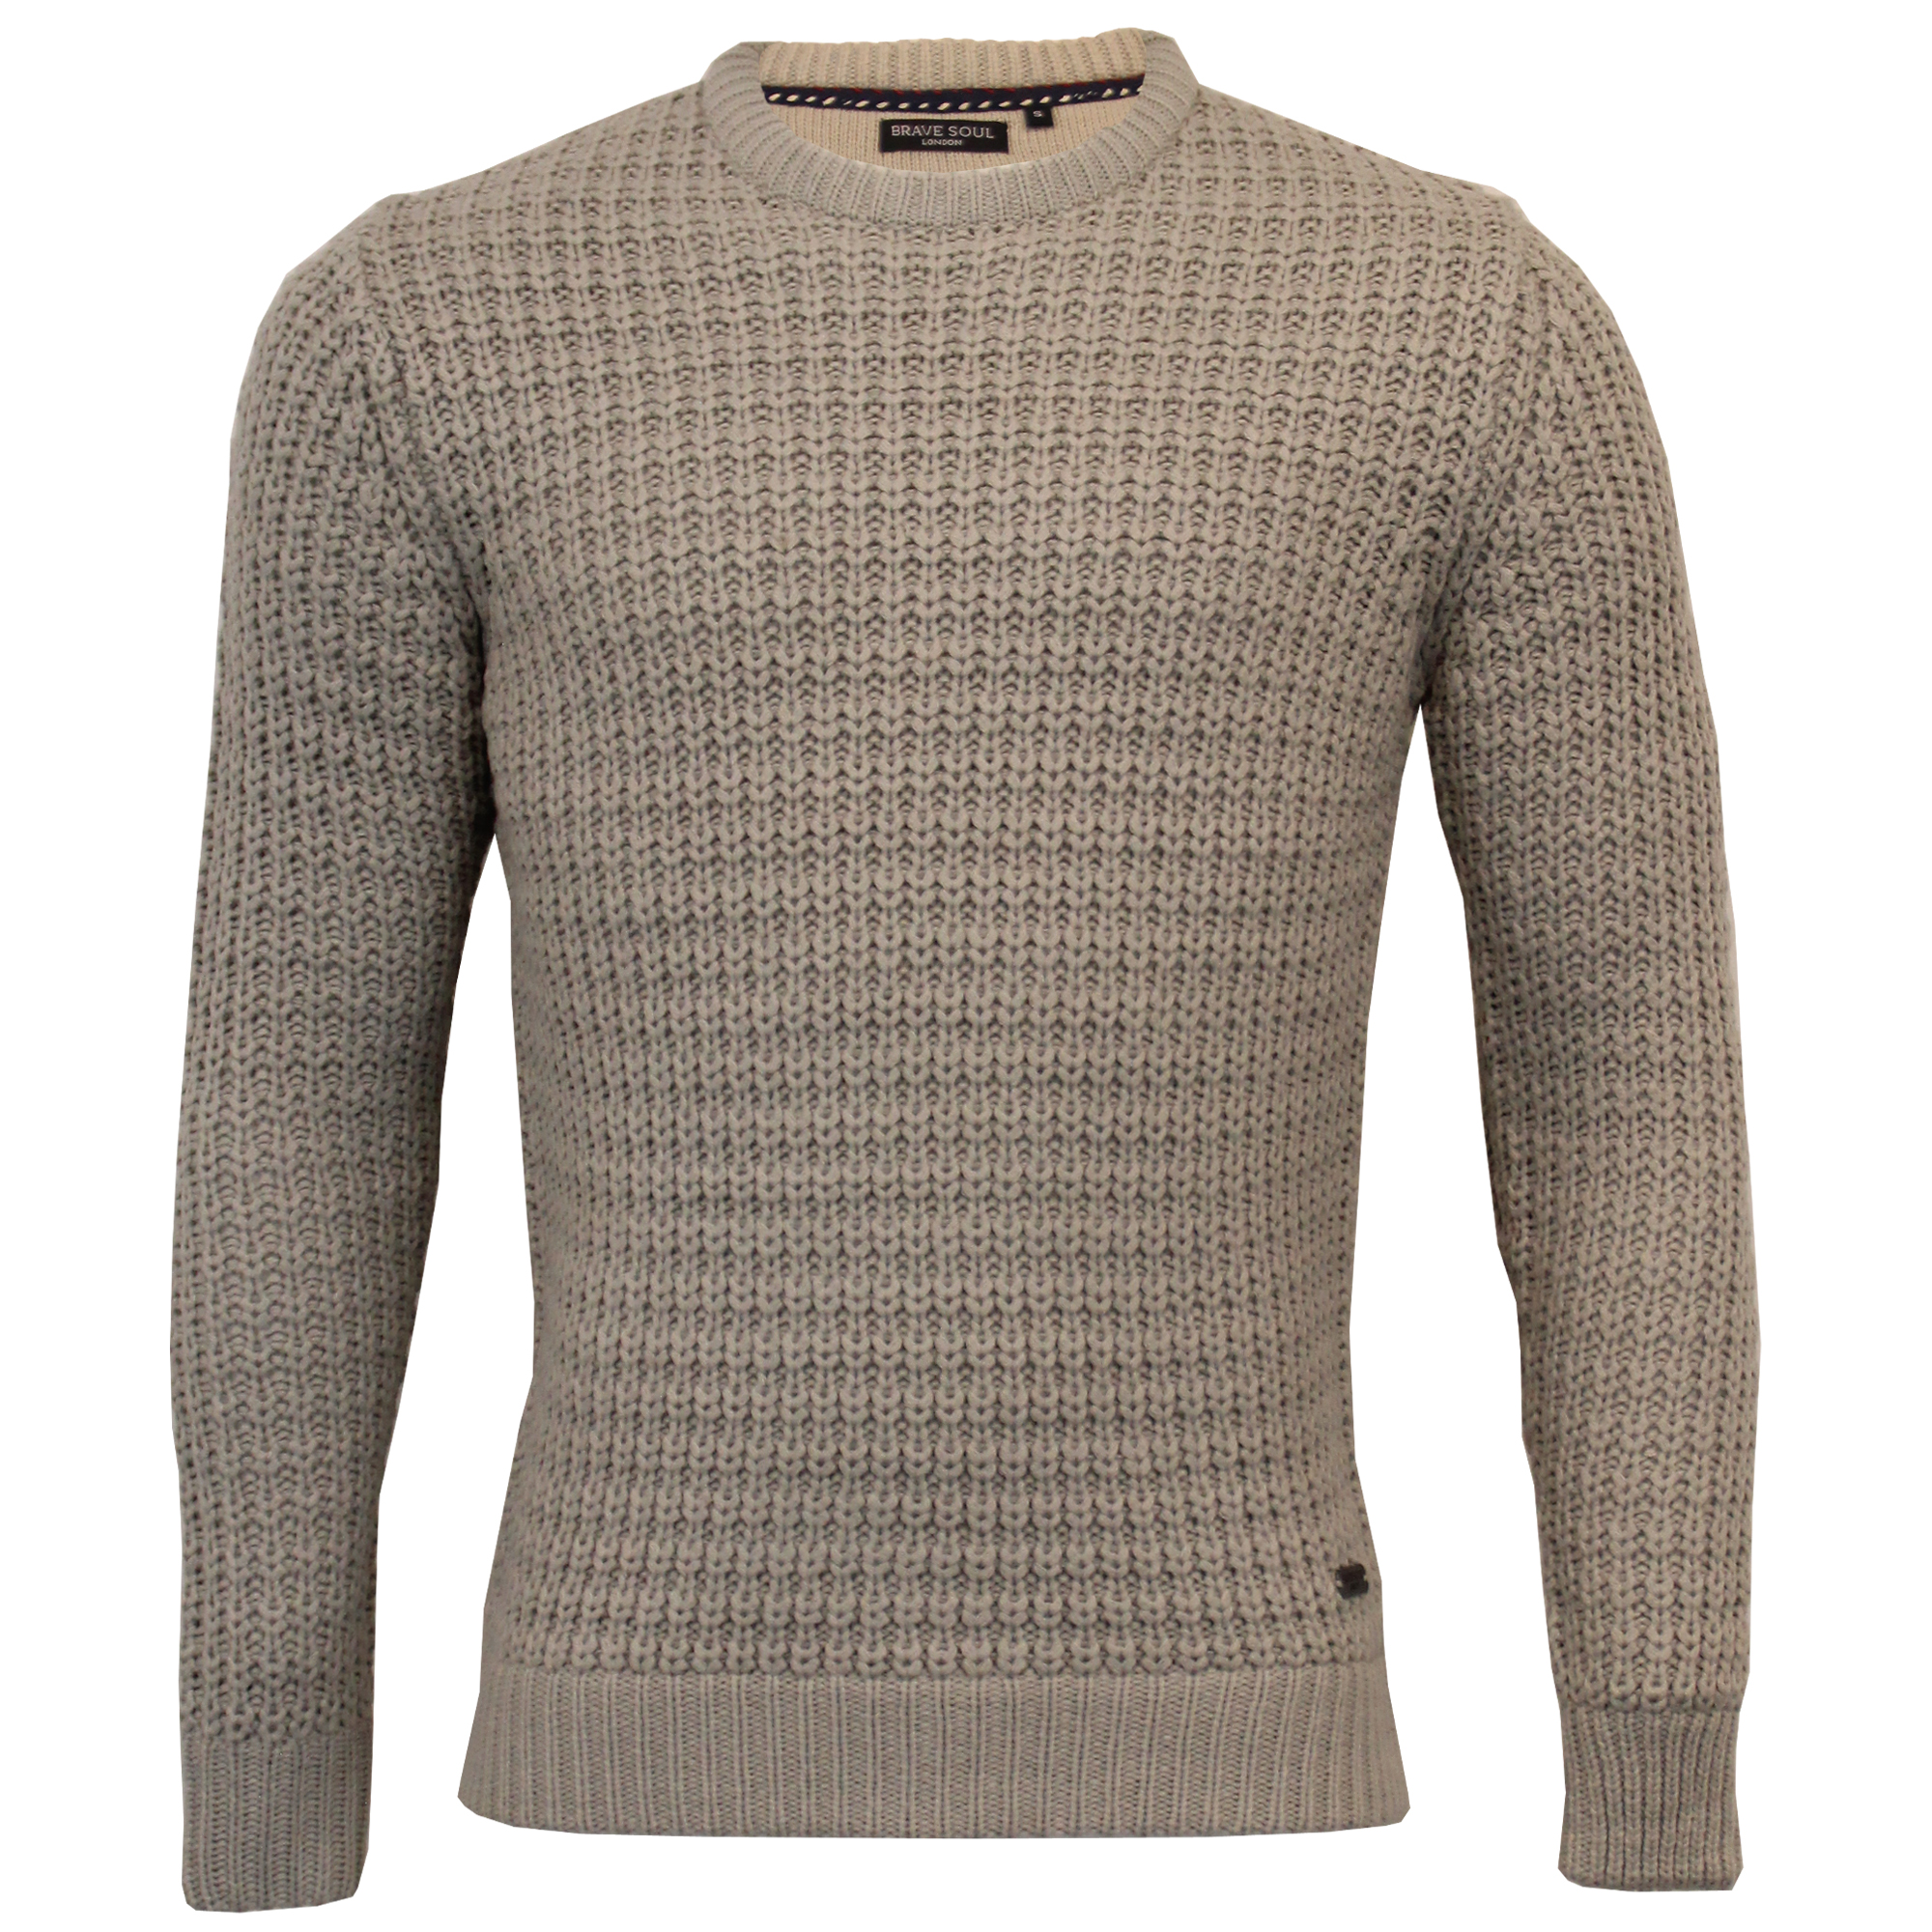 Mens-Cable-Knitted-Jumper-Brave-Soul-DIRAC-Crew-Neck-Pullover-Top-Winter-Fashion thumbnail 2